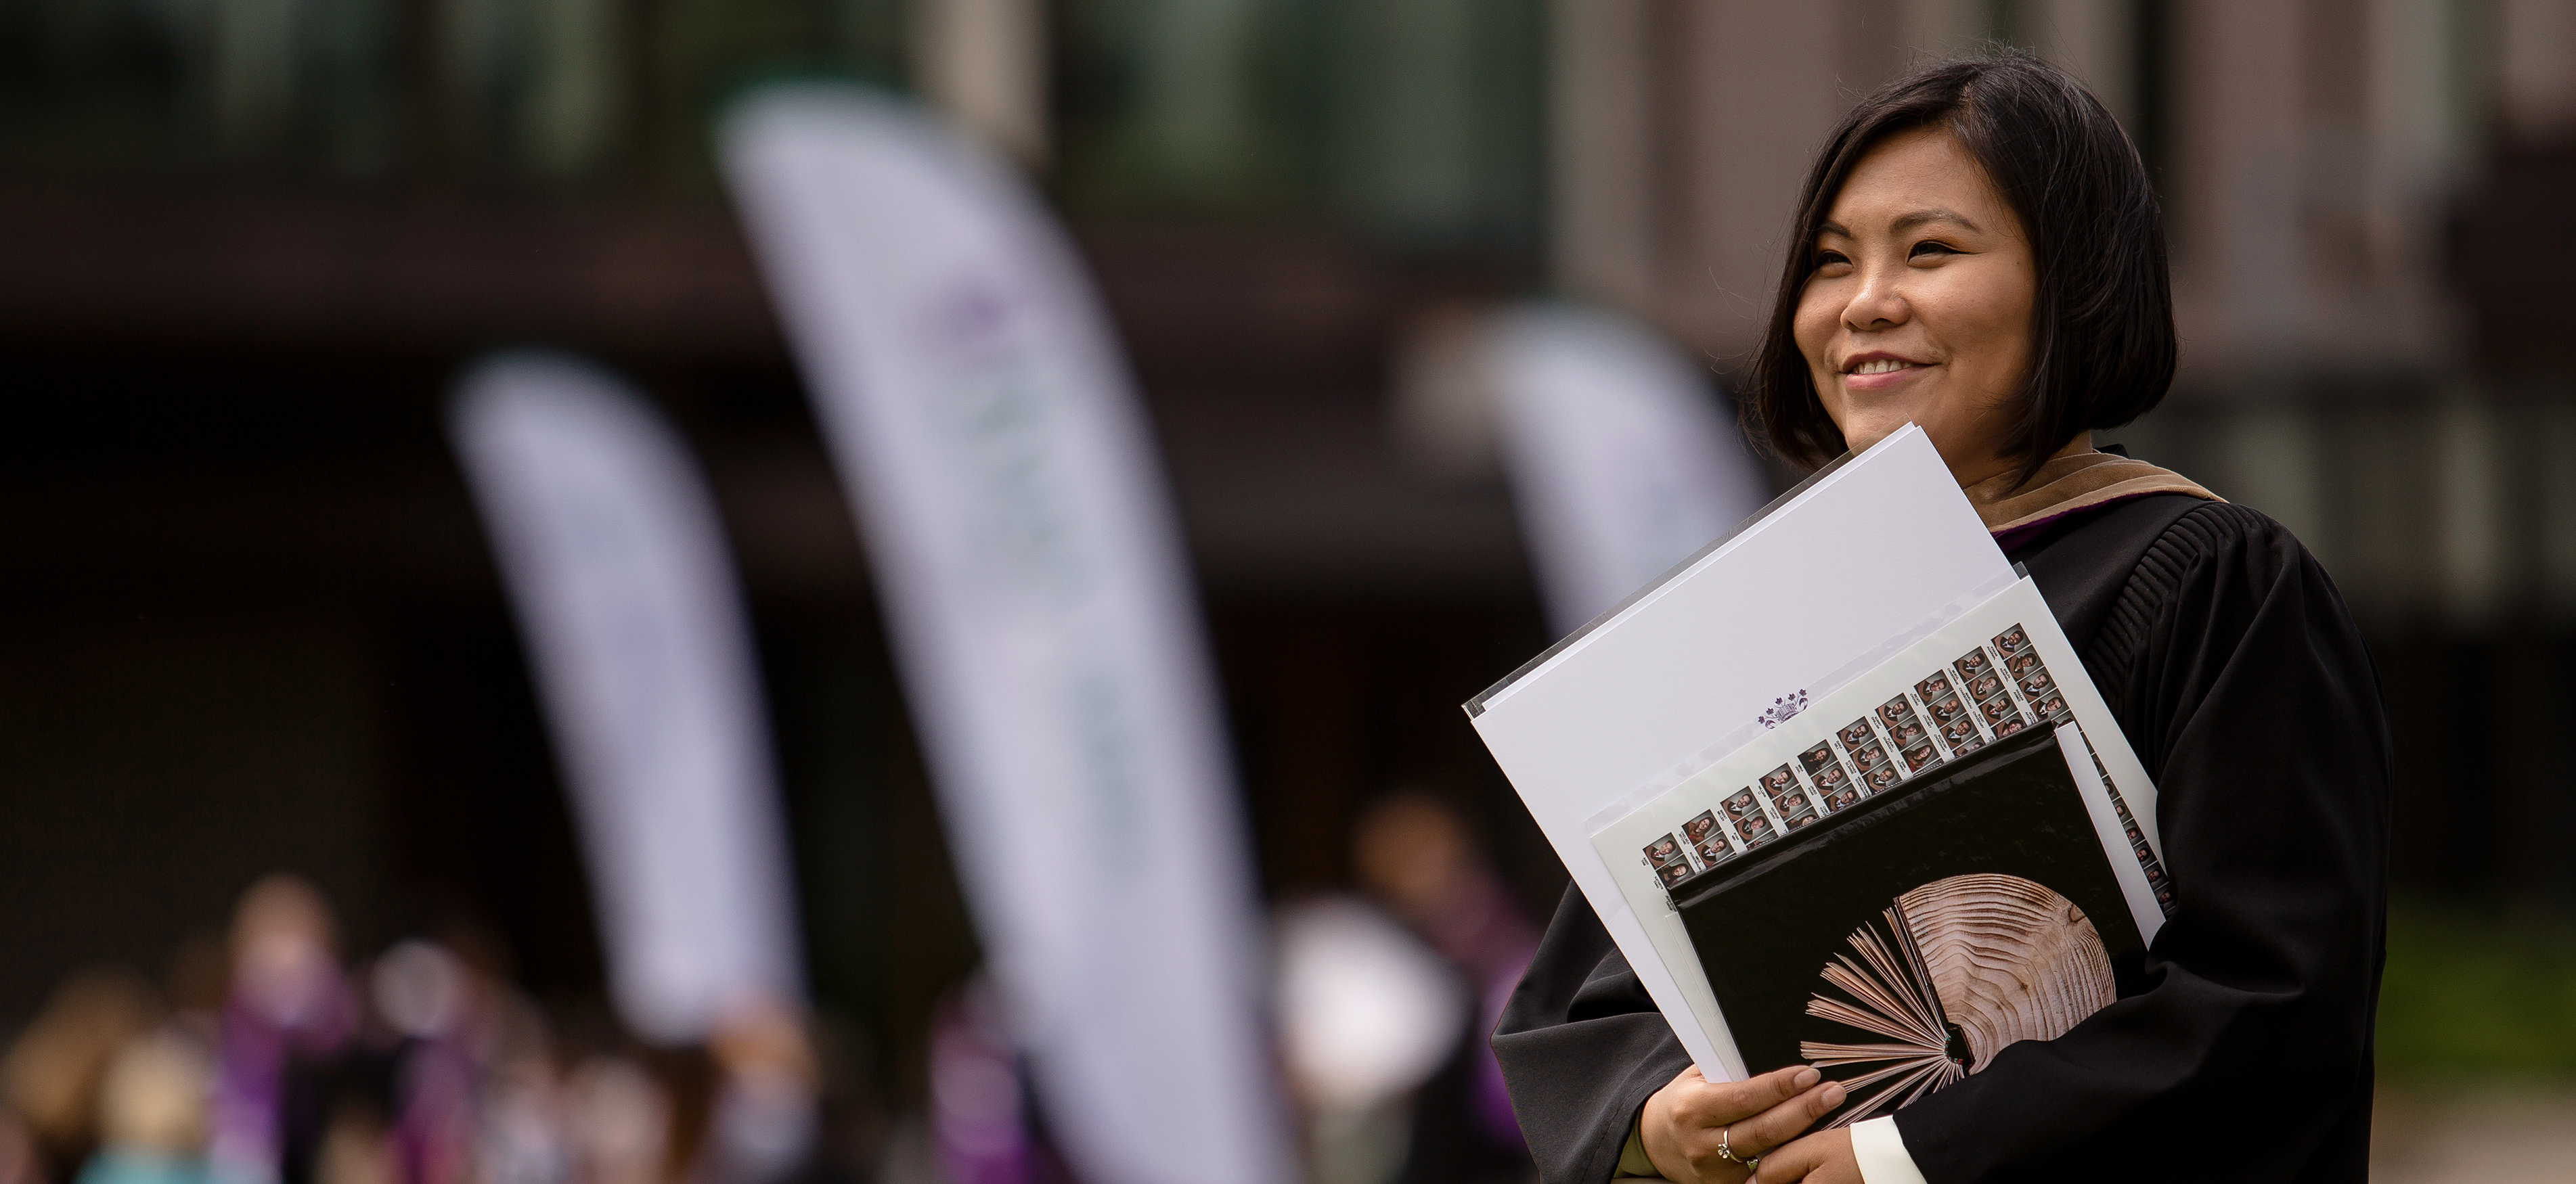 A woman dressed in a graduation gown and holding her Ivey degree stands in front of the Ivey Building at Convocation.